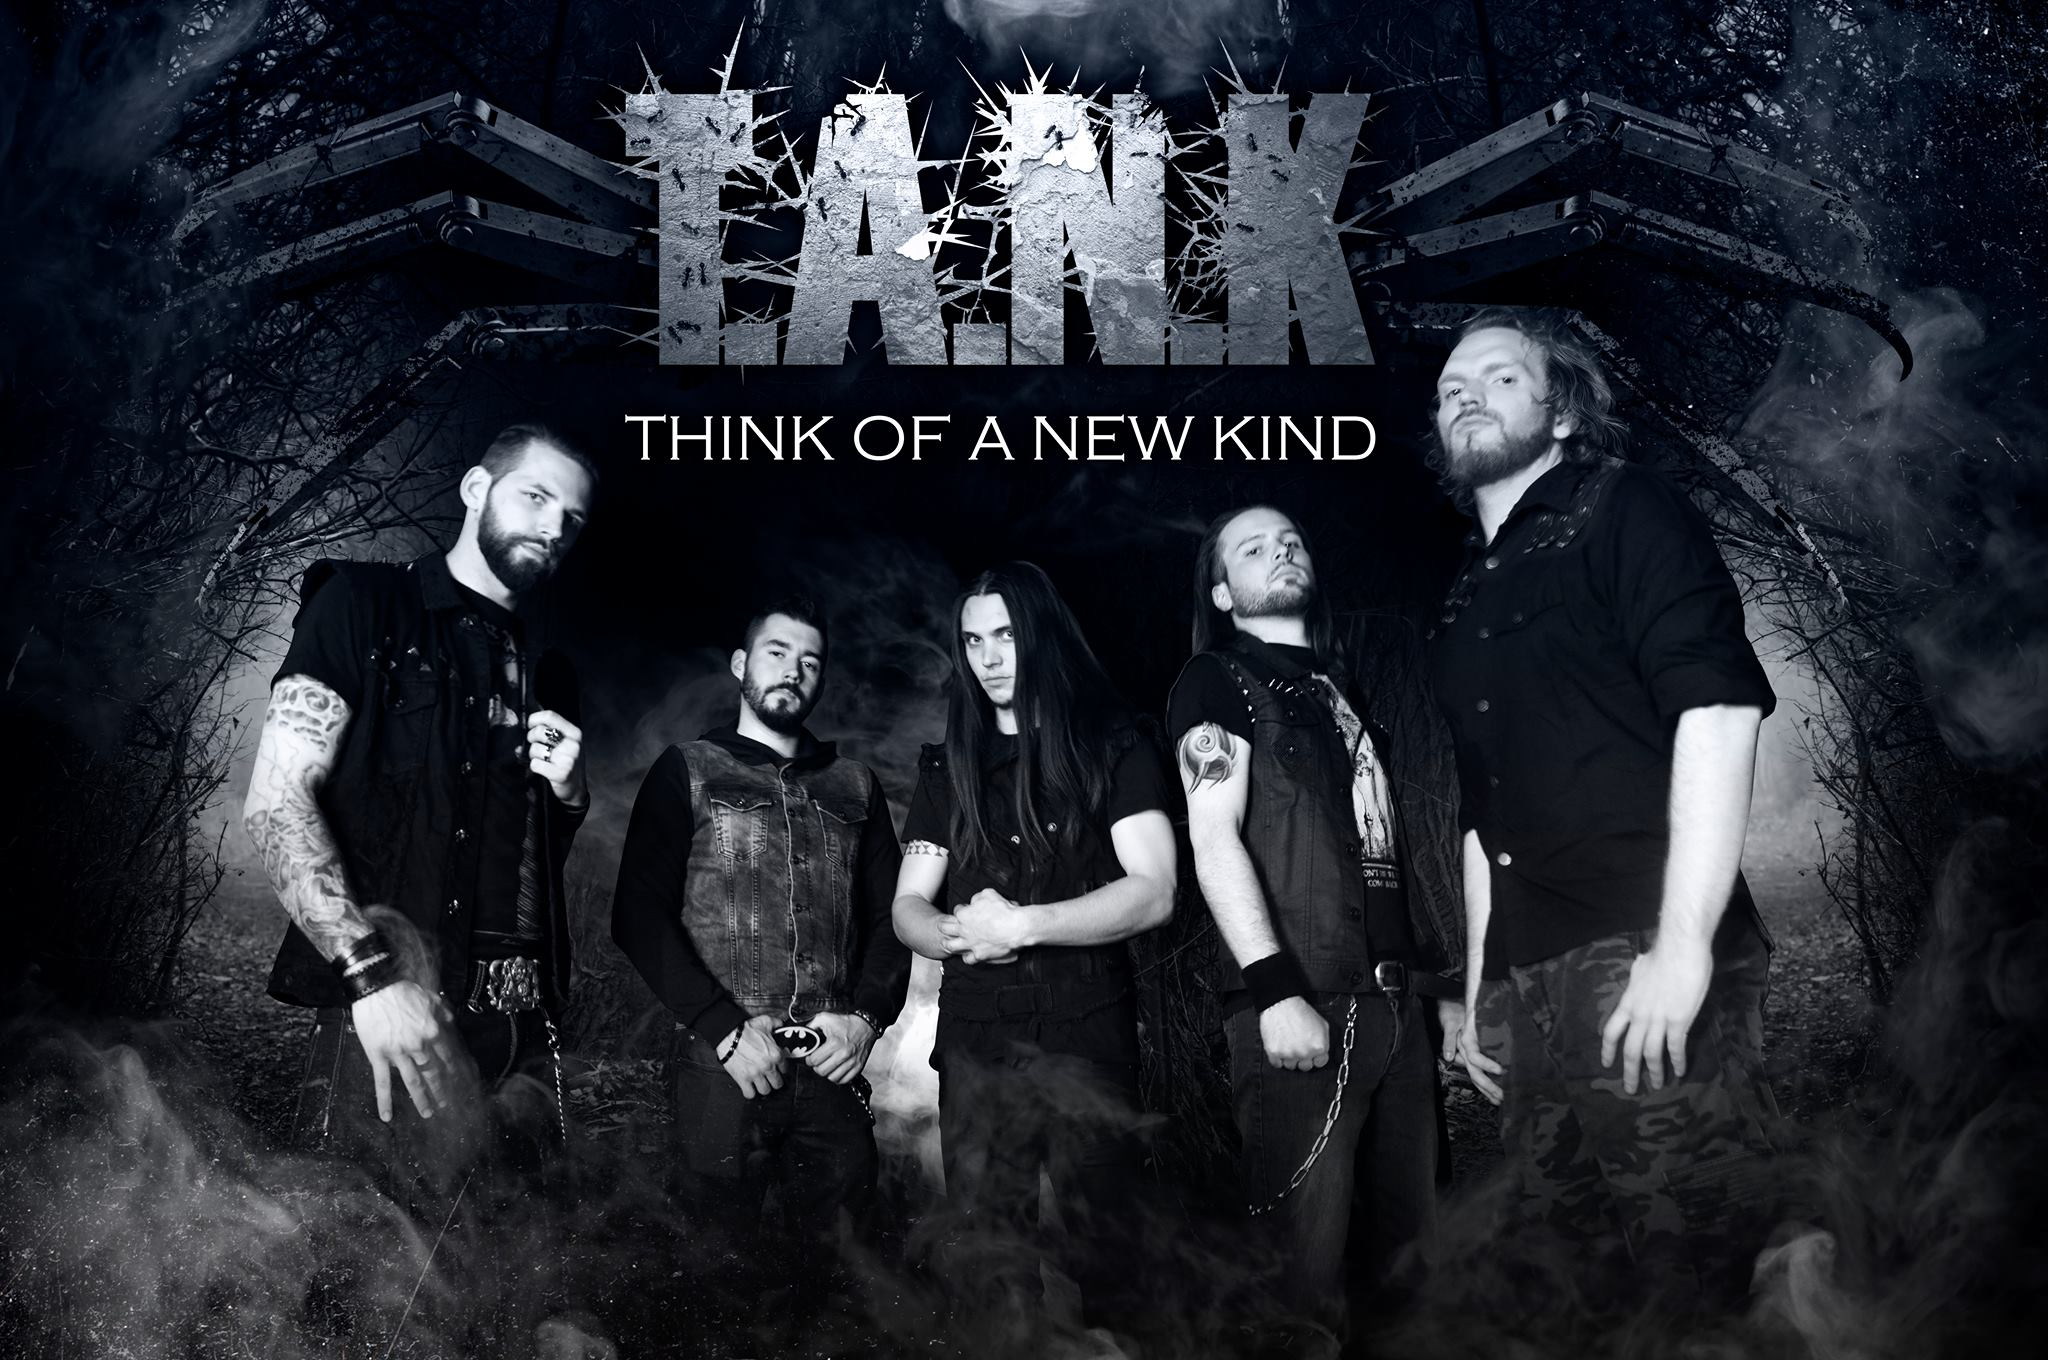 You are currently viewing T.A.N.K. (Think of A New Kind)<br/>Chacun son tour !